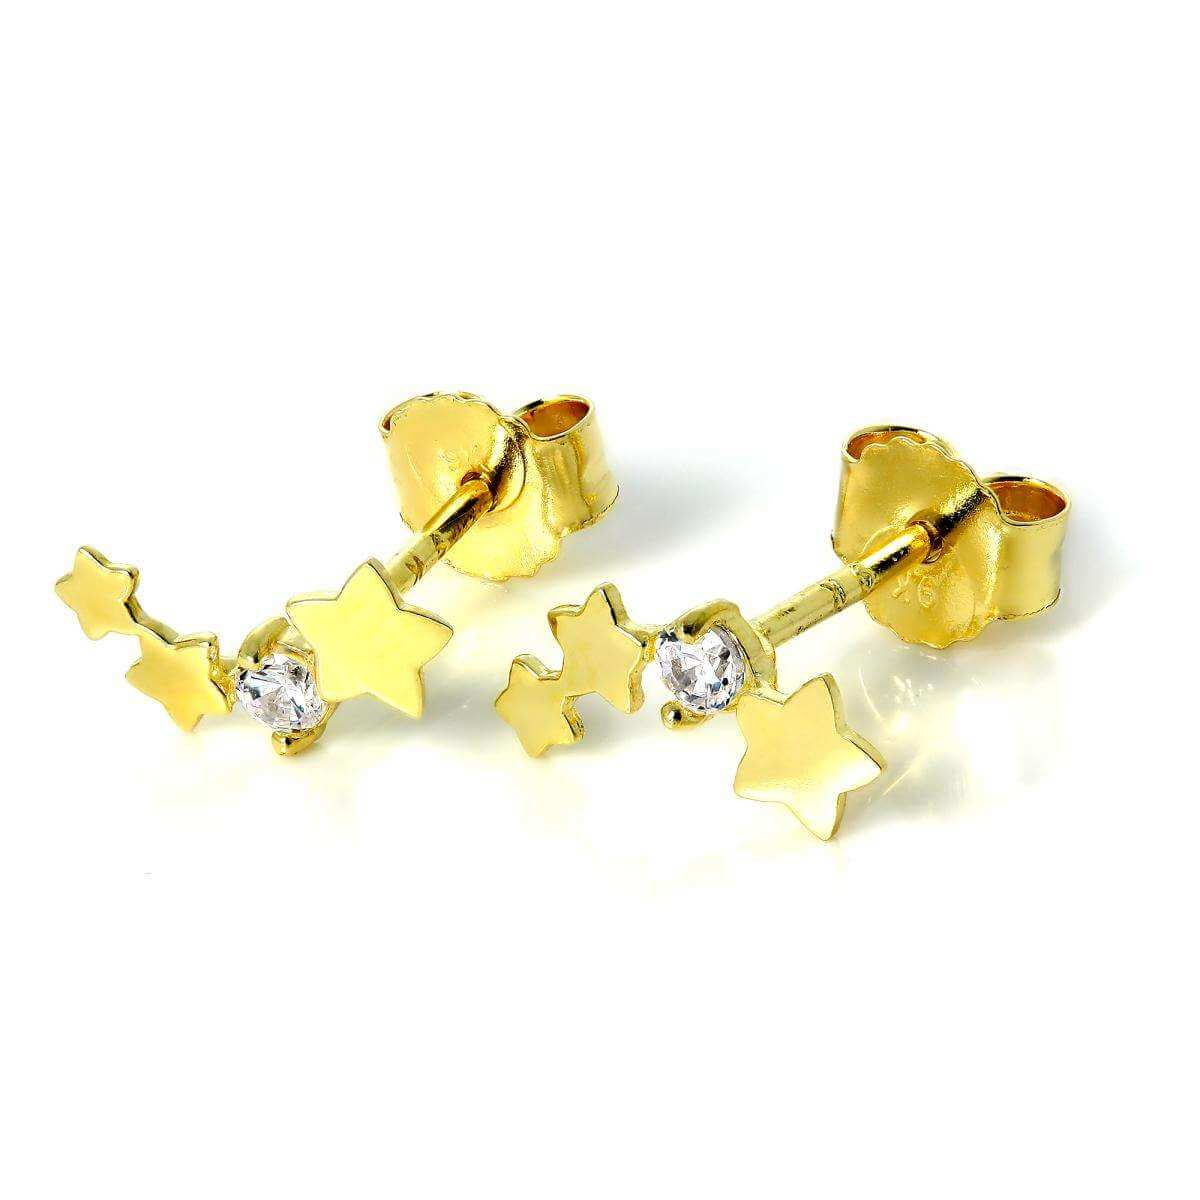 9ct Gold Triple Star Stud Earrings with Clear CZ Crystal